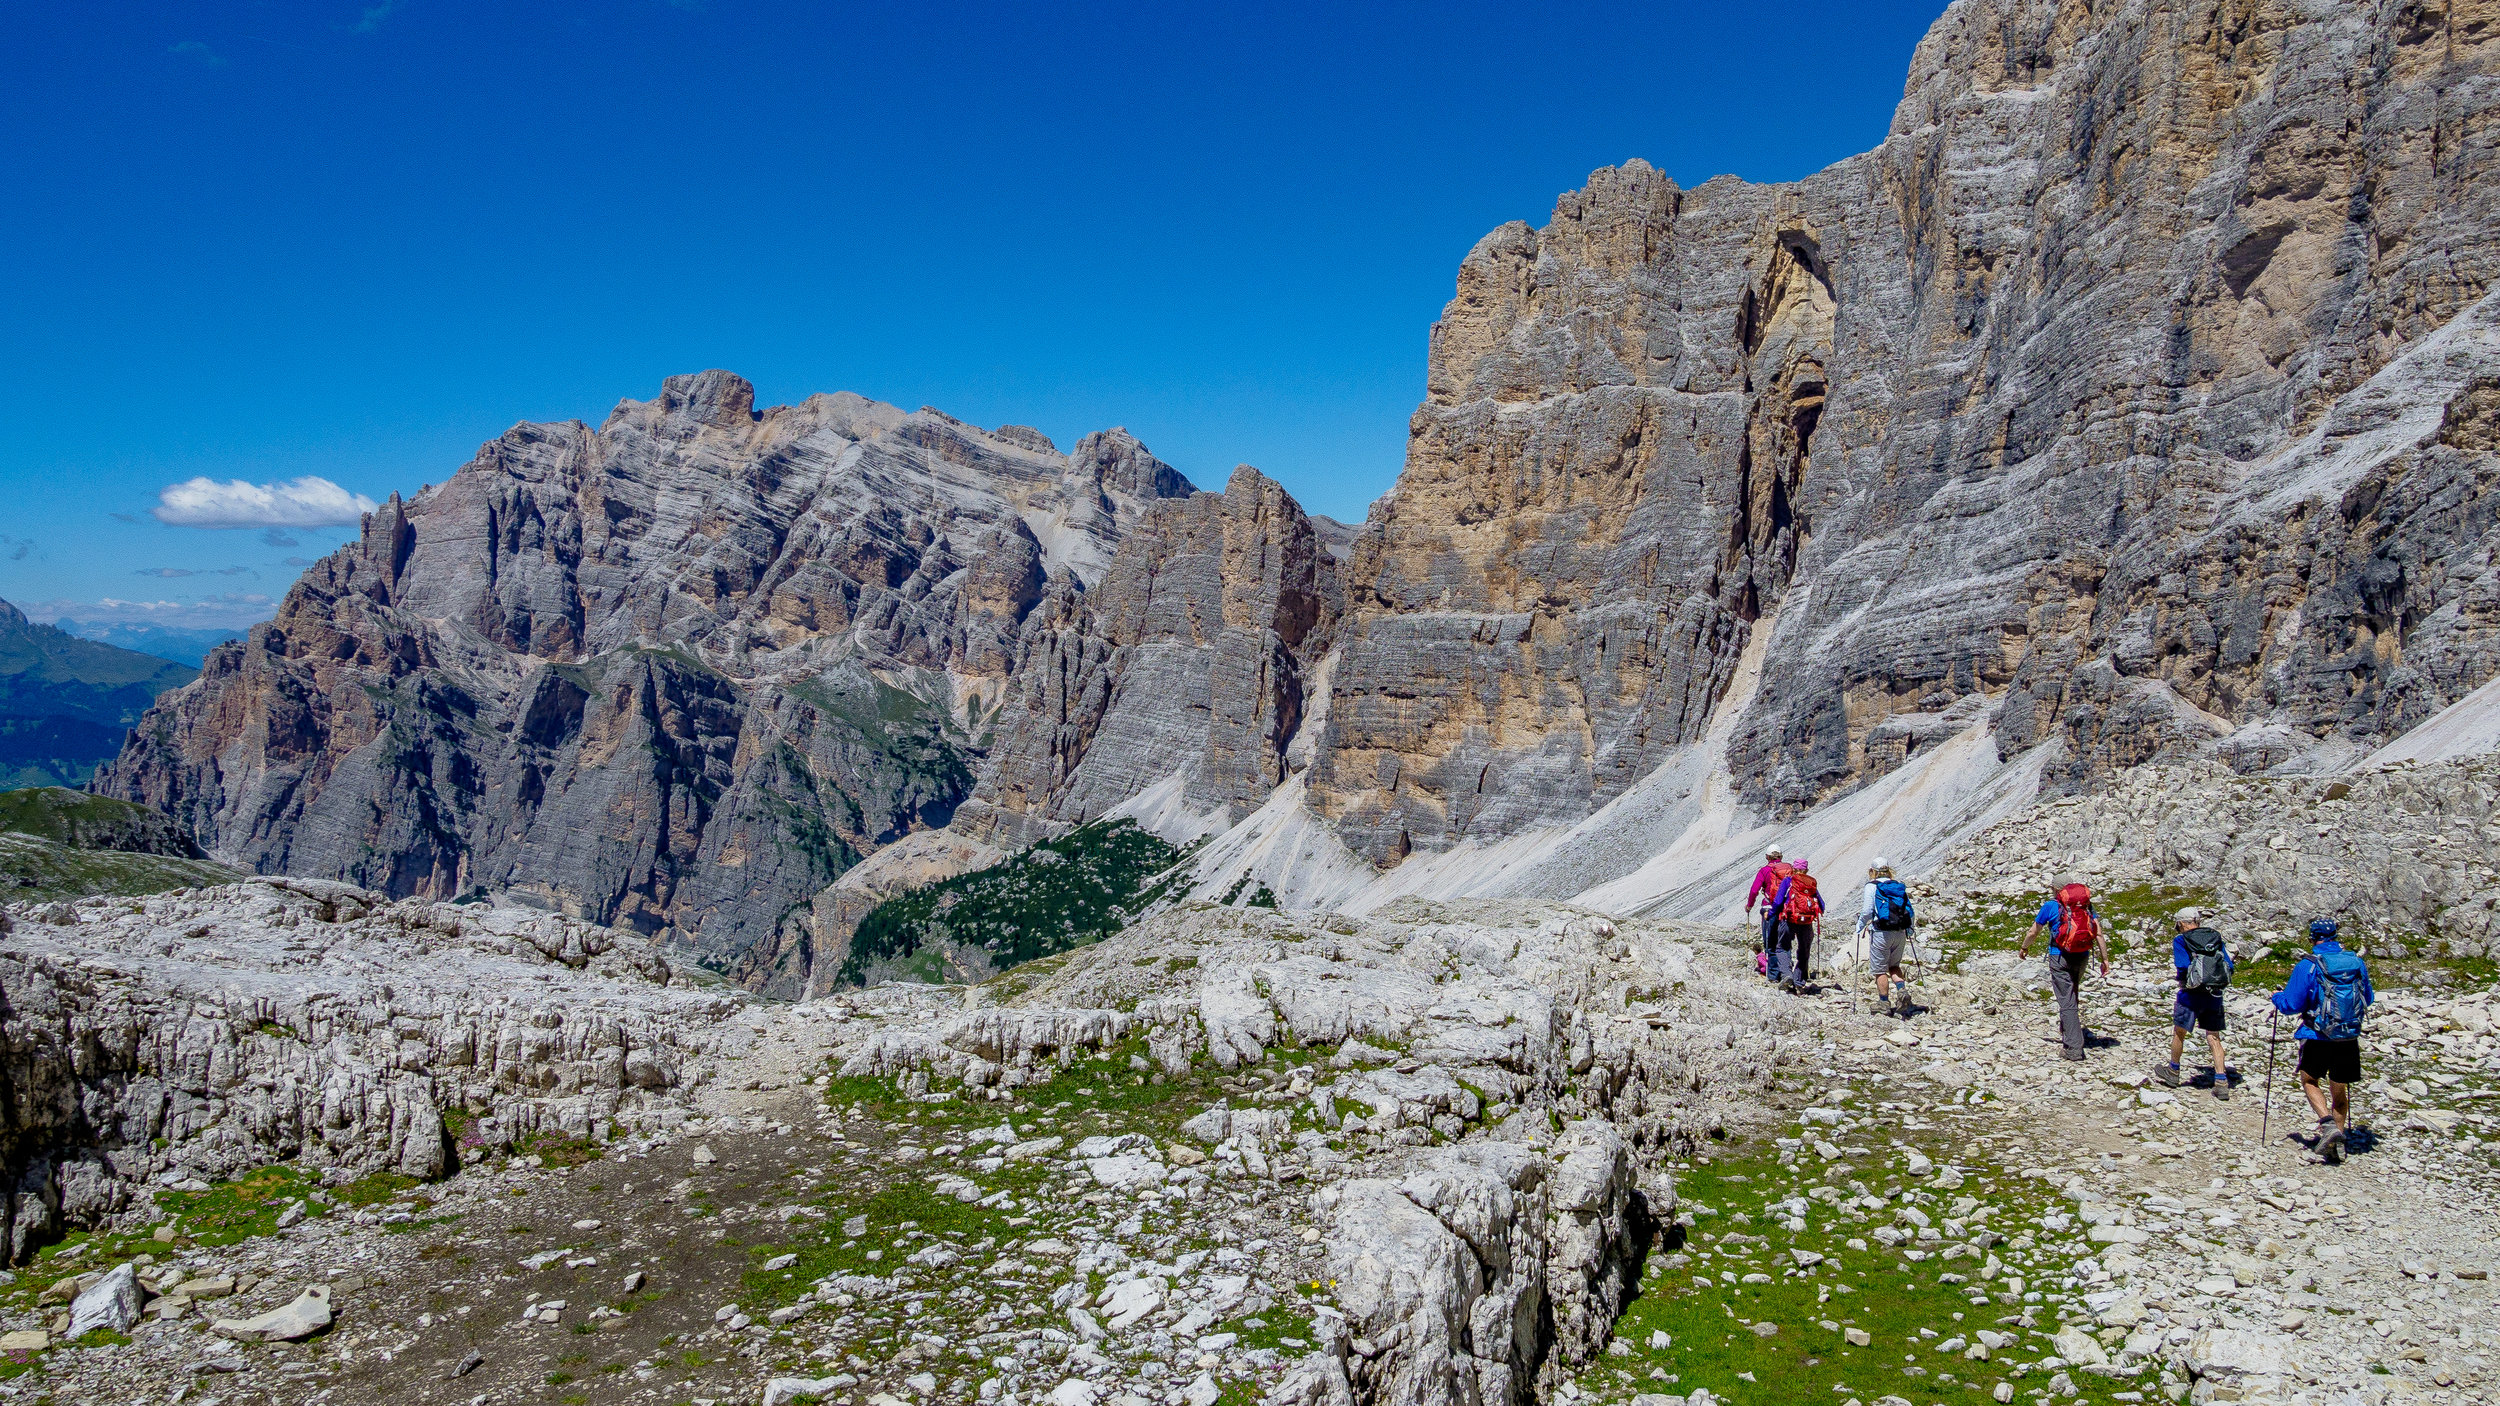 The Dolomites - The Dolomites striking pillared scenery remains unequalled anywhere else in the world.Walking Grade: Grade 6 & Grade 7